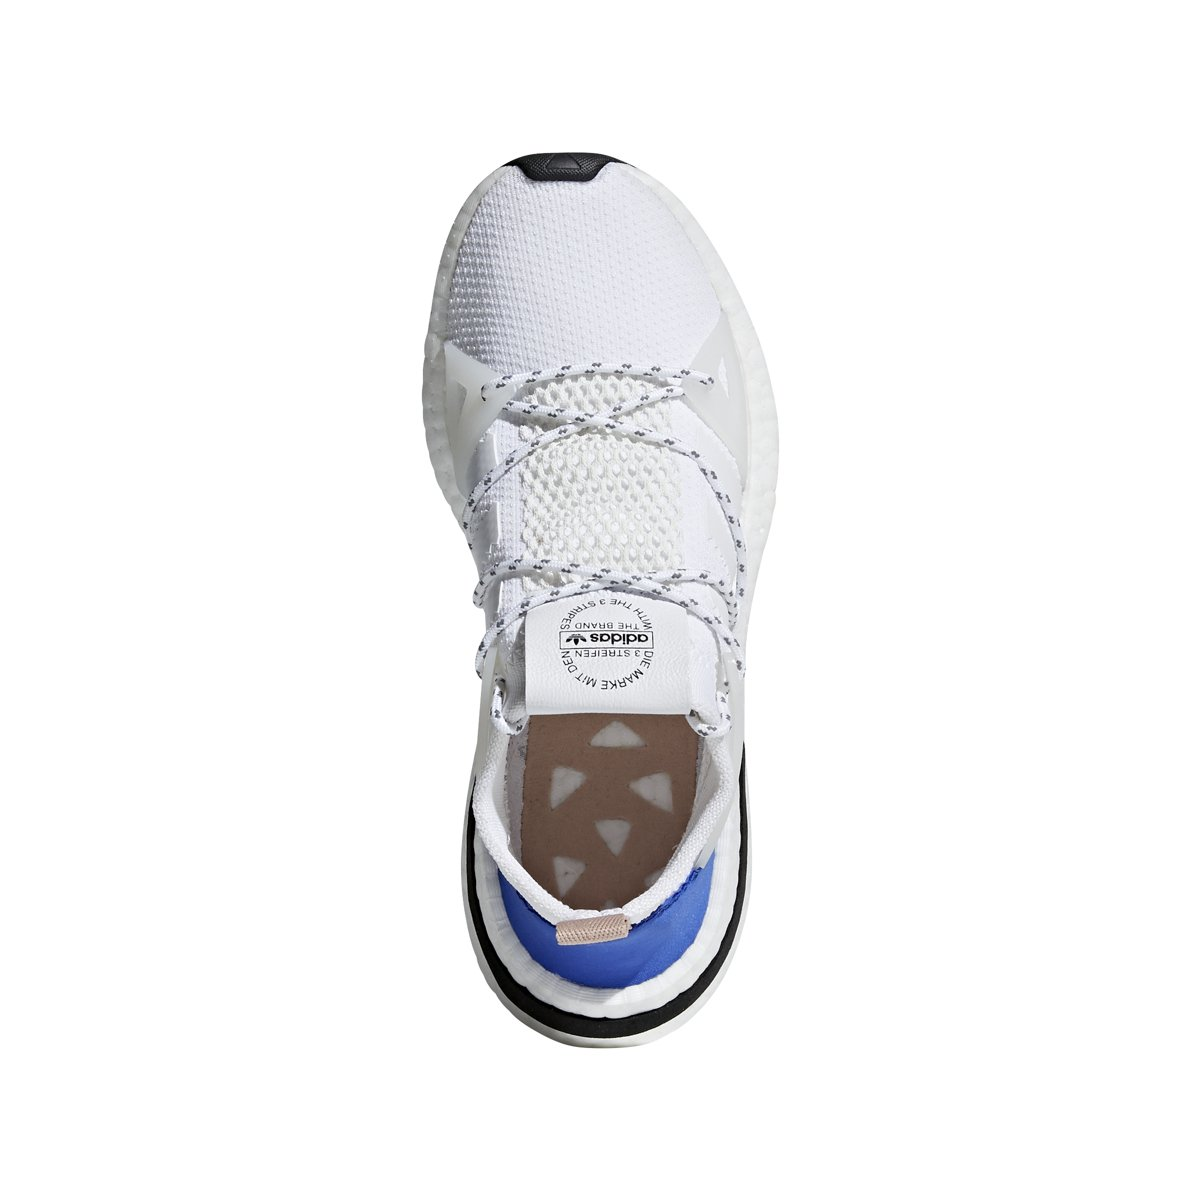 detailed look 94160 197d3 Amazon.com  adidas Originals Arkyn Runner - Womens WhiteAsh Pearl Nylon  Running Shoes  Road Running